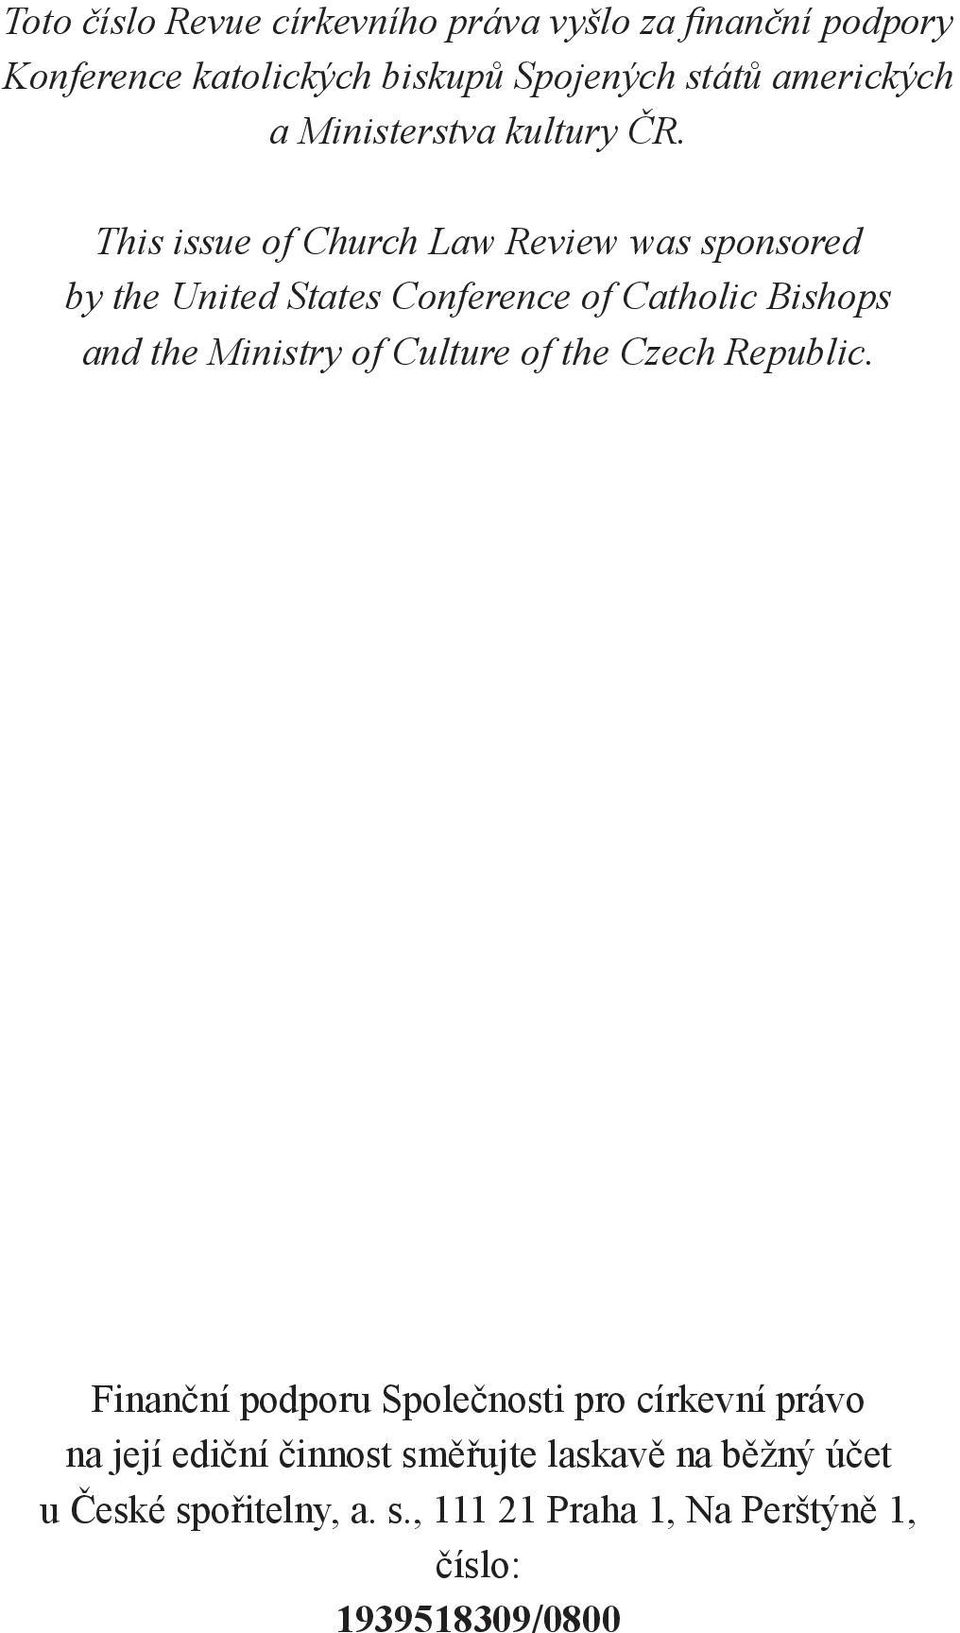 This issue of Church Law Review was sponsored by the United States Conference of Catholic Bishops and the Ministry of